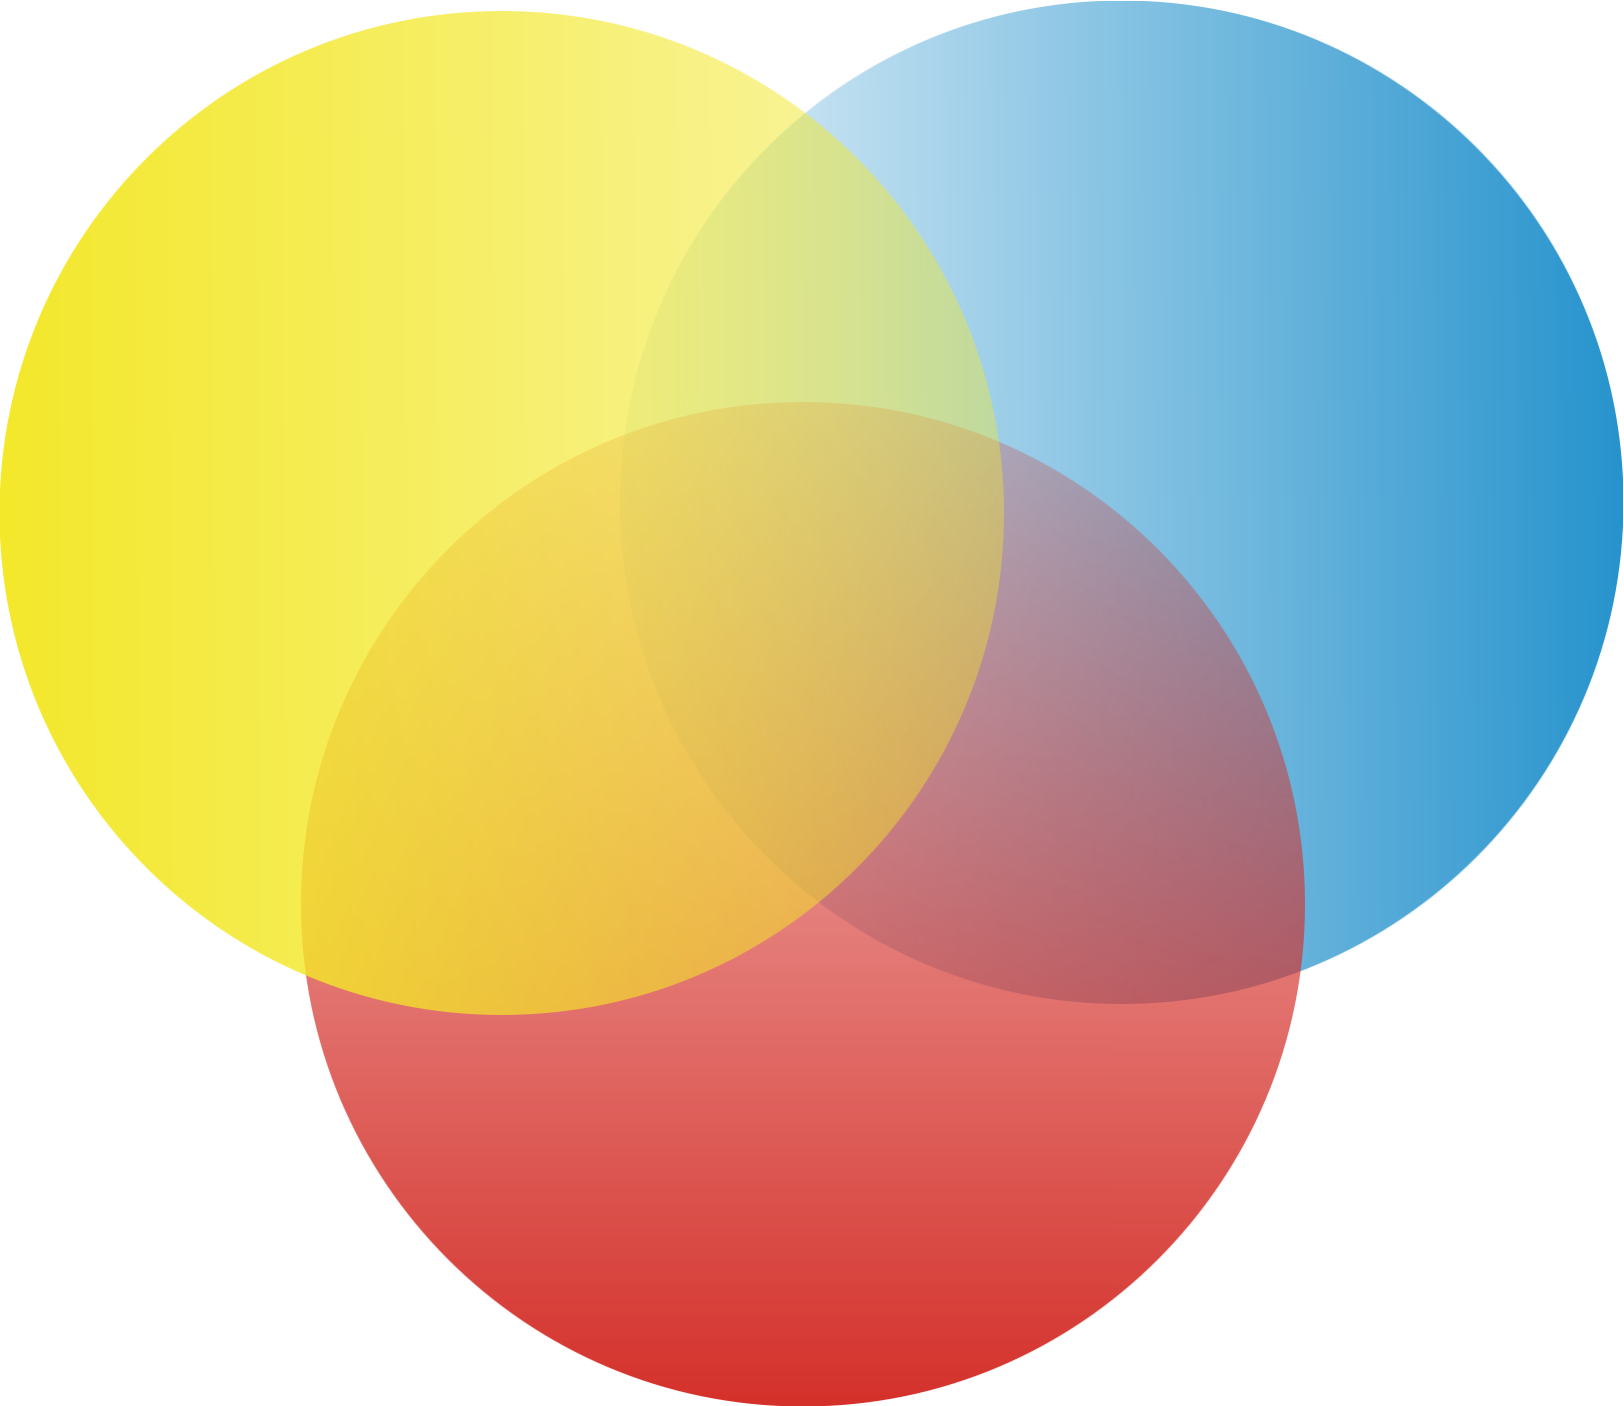 3 set venn diagram - Google Search | Primary Mathematics ...